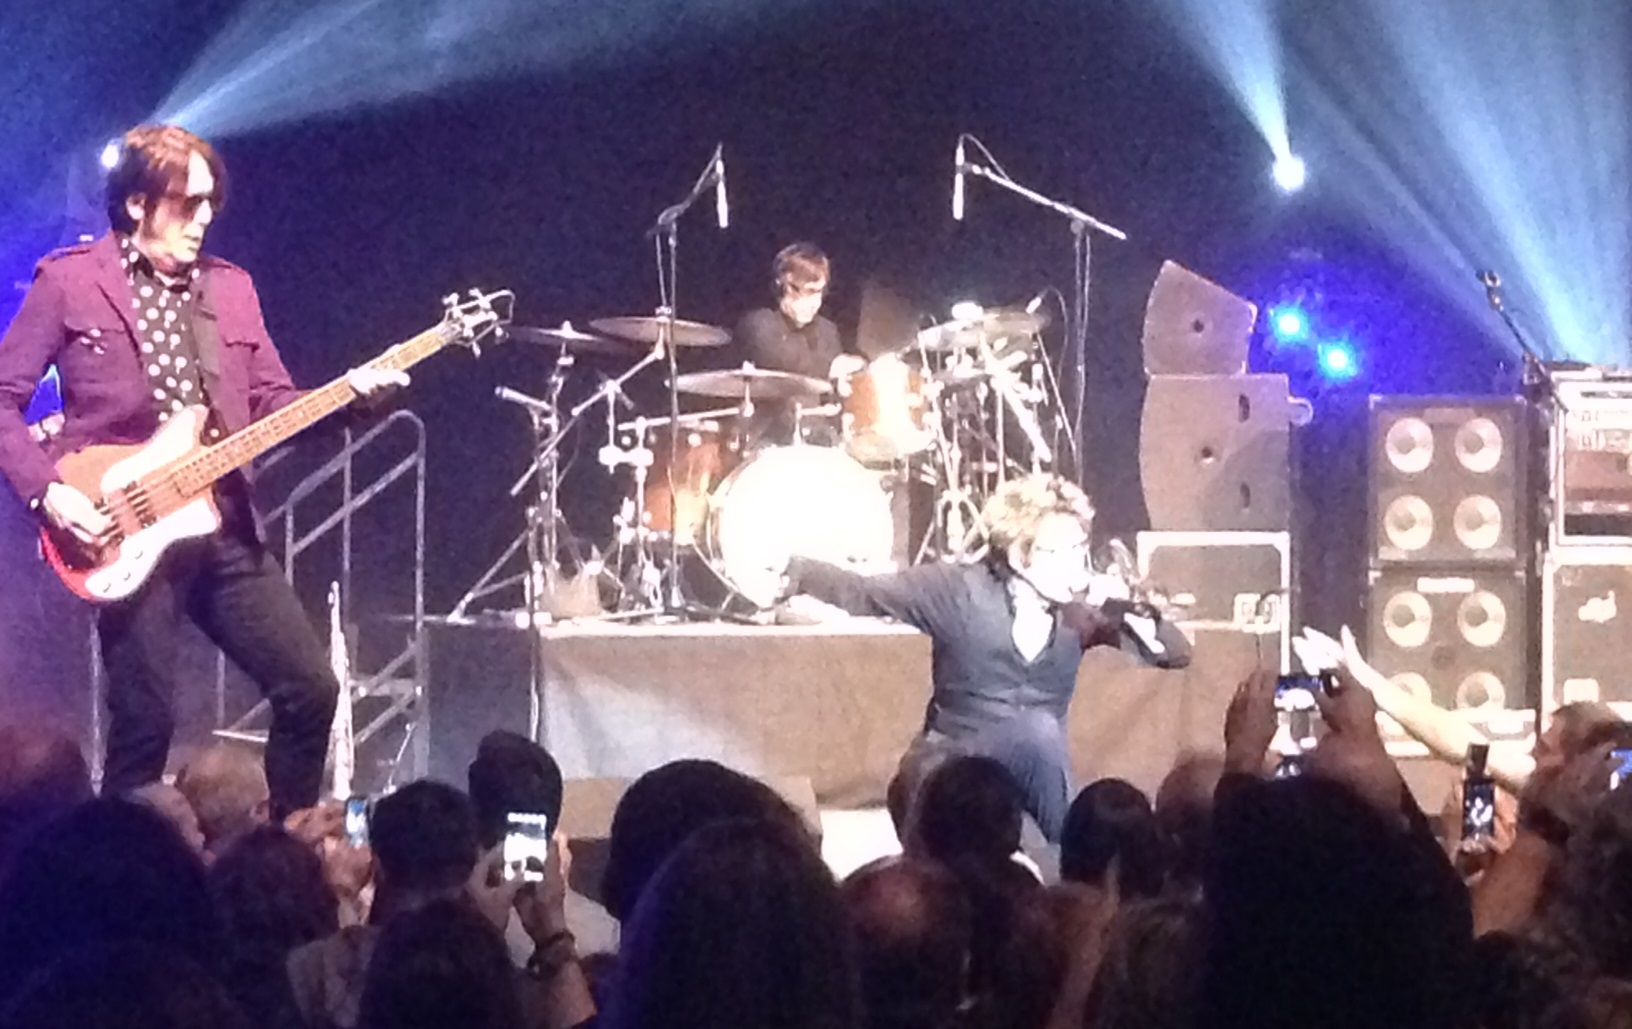 Brothers Tim and Richard Butler led the Psychedelic Furs at the State Theatre on Tuesday.